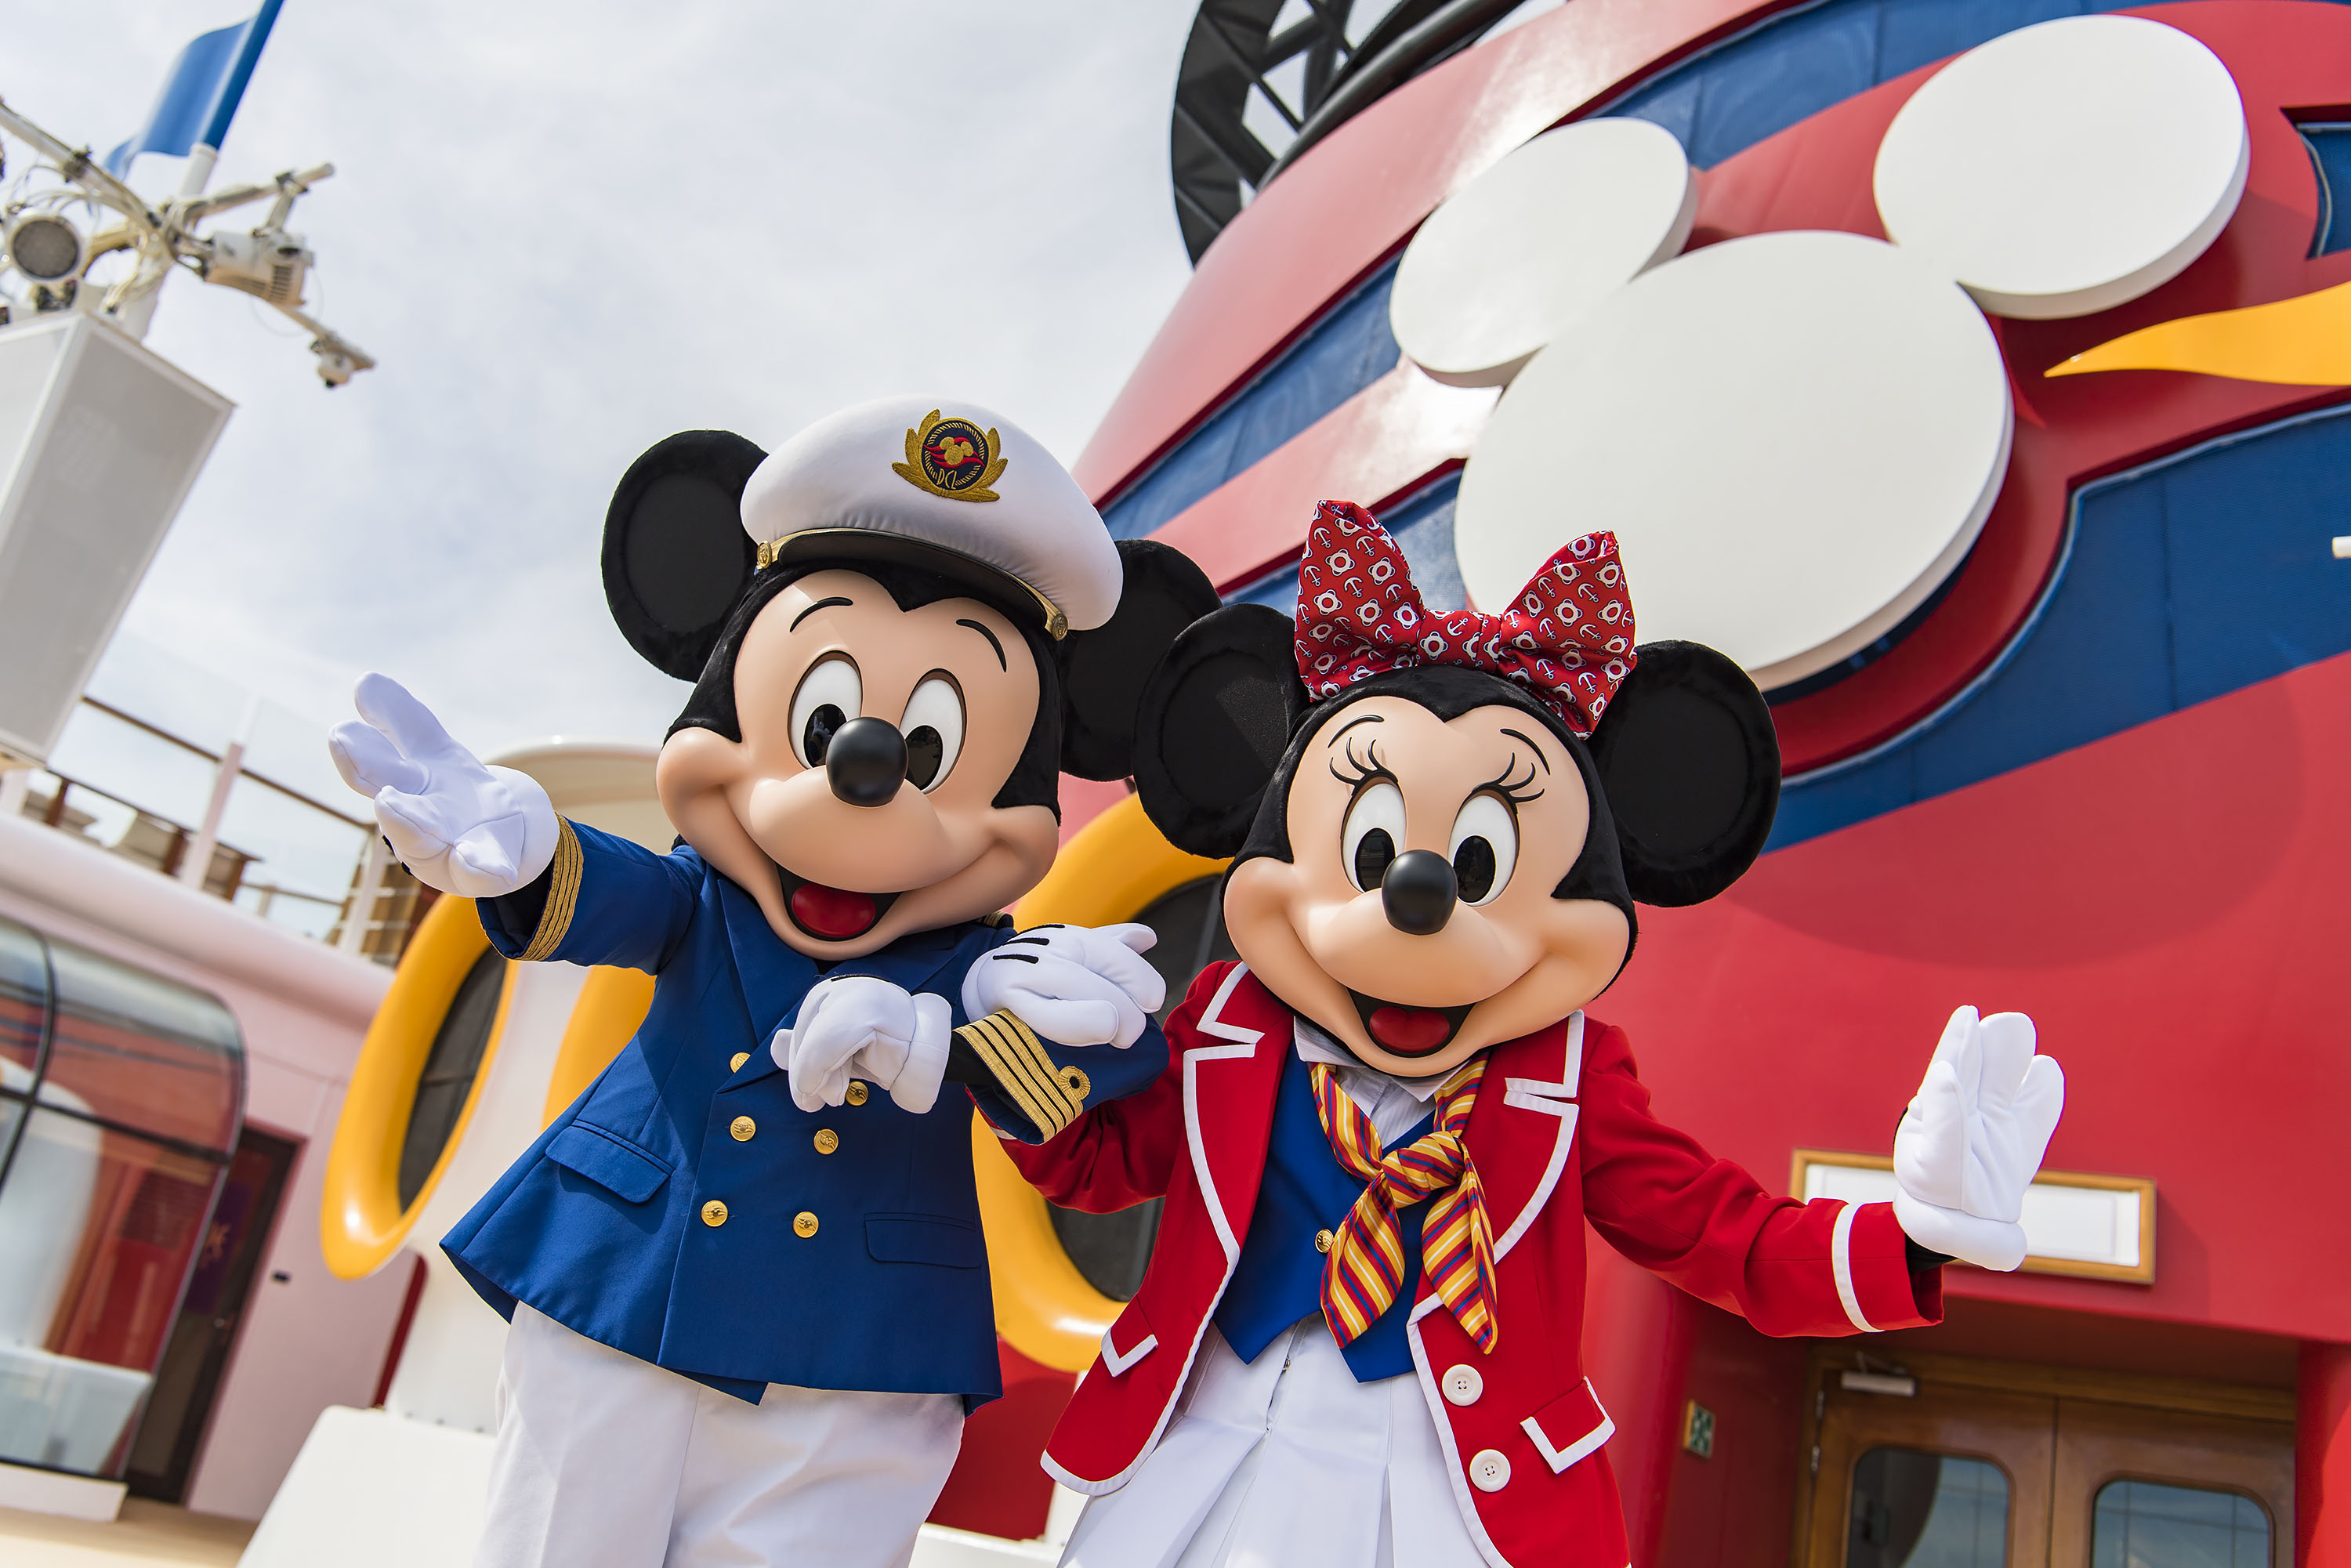 Captain Mickey and Minnie Mouse